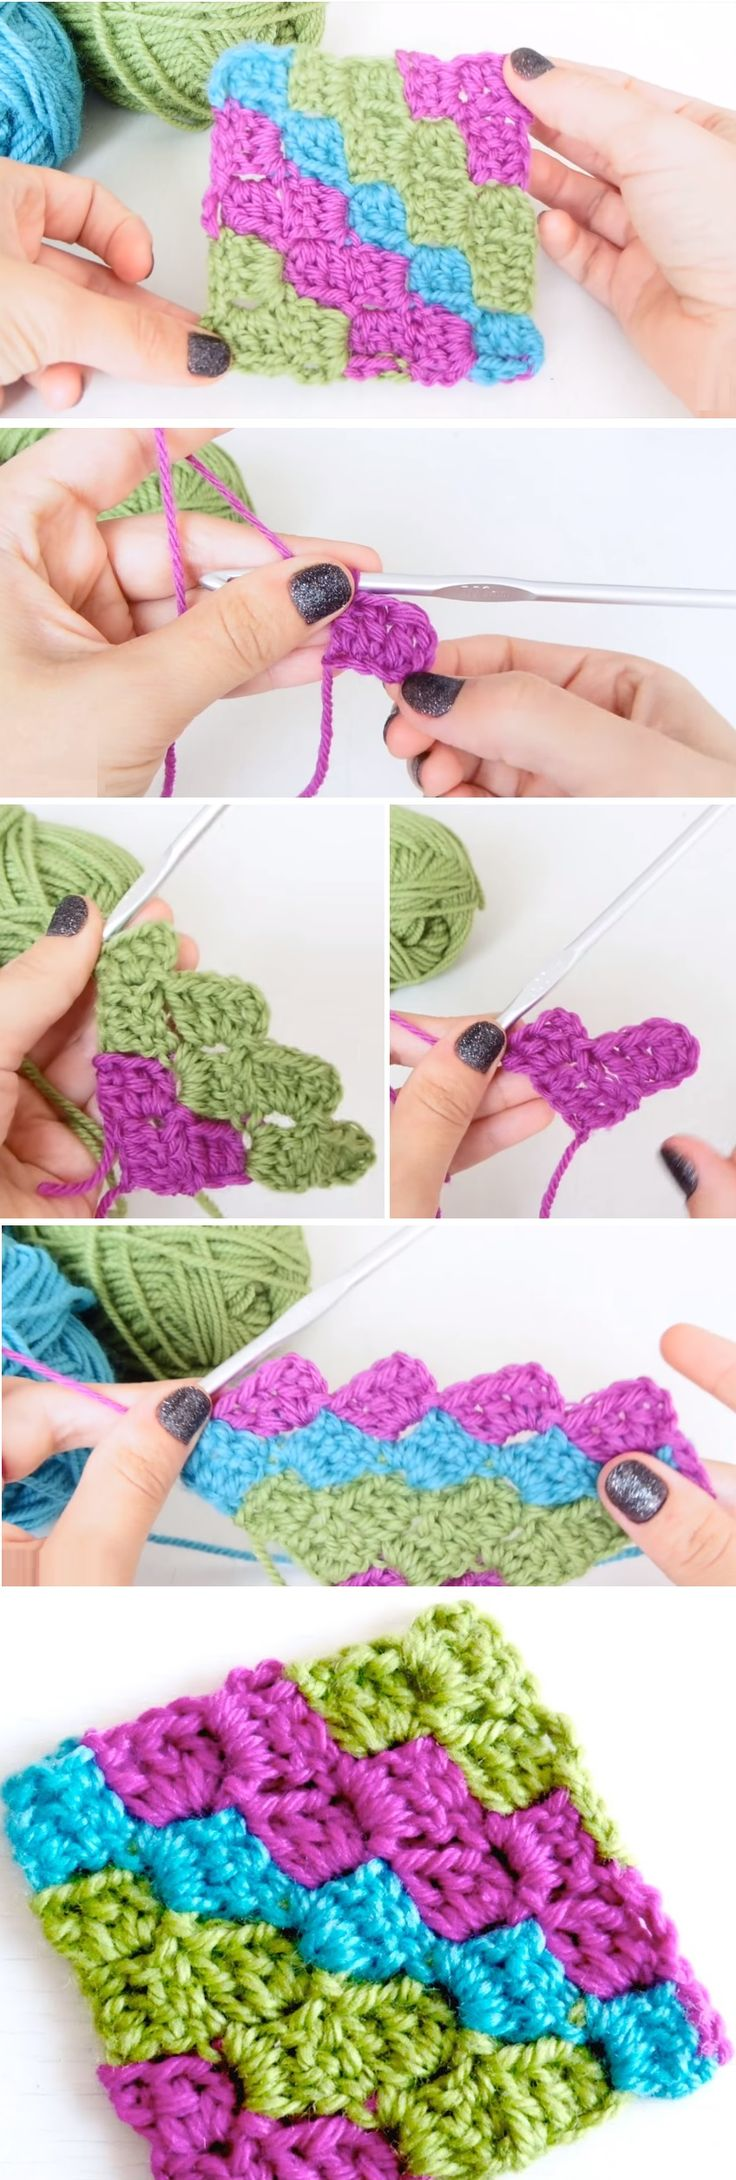 We are going to learn how to crochet a wonderful corner to corner blanket. The tutorial we found online, that is pretty popular, is going to guide us through all the necessary steps and in the end we are going to have ourselves a brand new blanket. To be more specific the tutorial is not… Read More Corner to Corner Blanket Tutorial